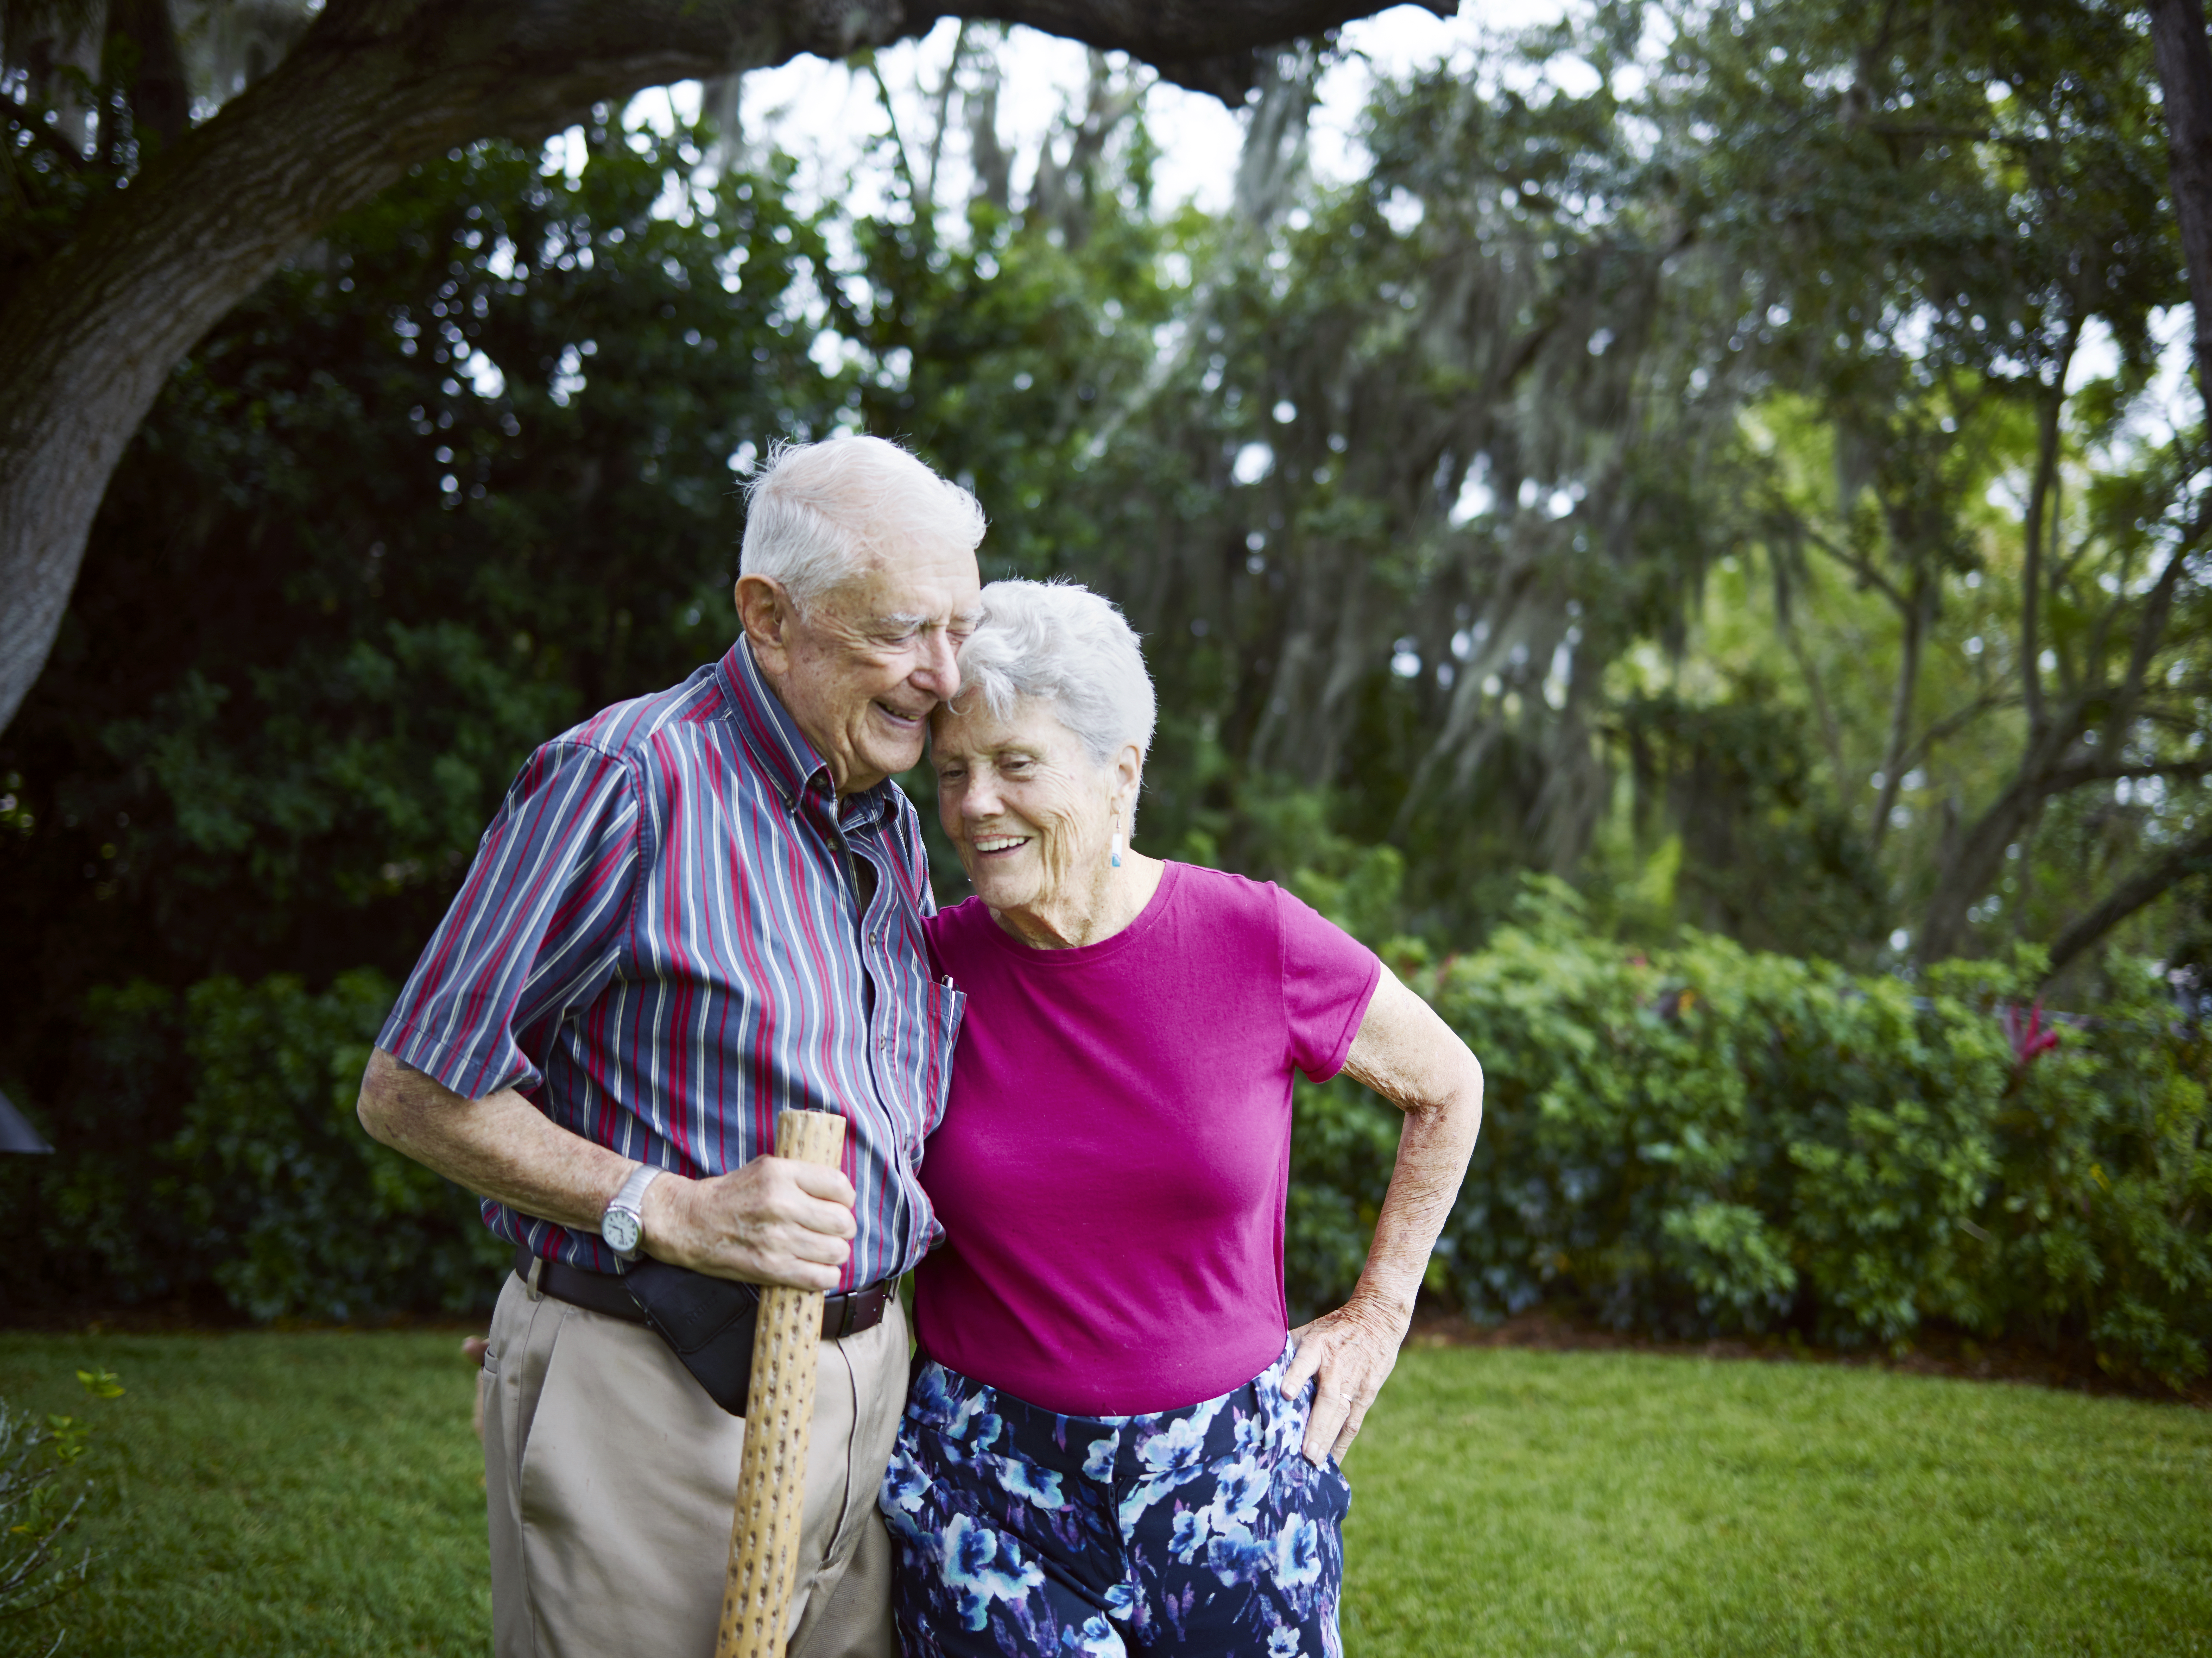 Dick Pell wants to be sure he can finance dementia care for his wife, Helen.